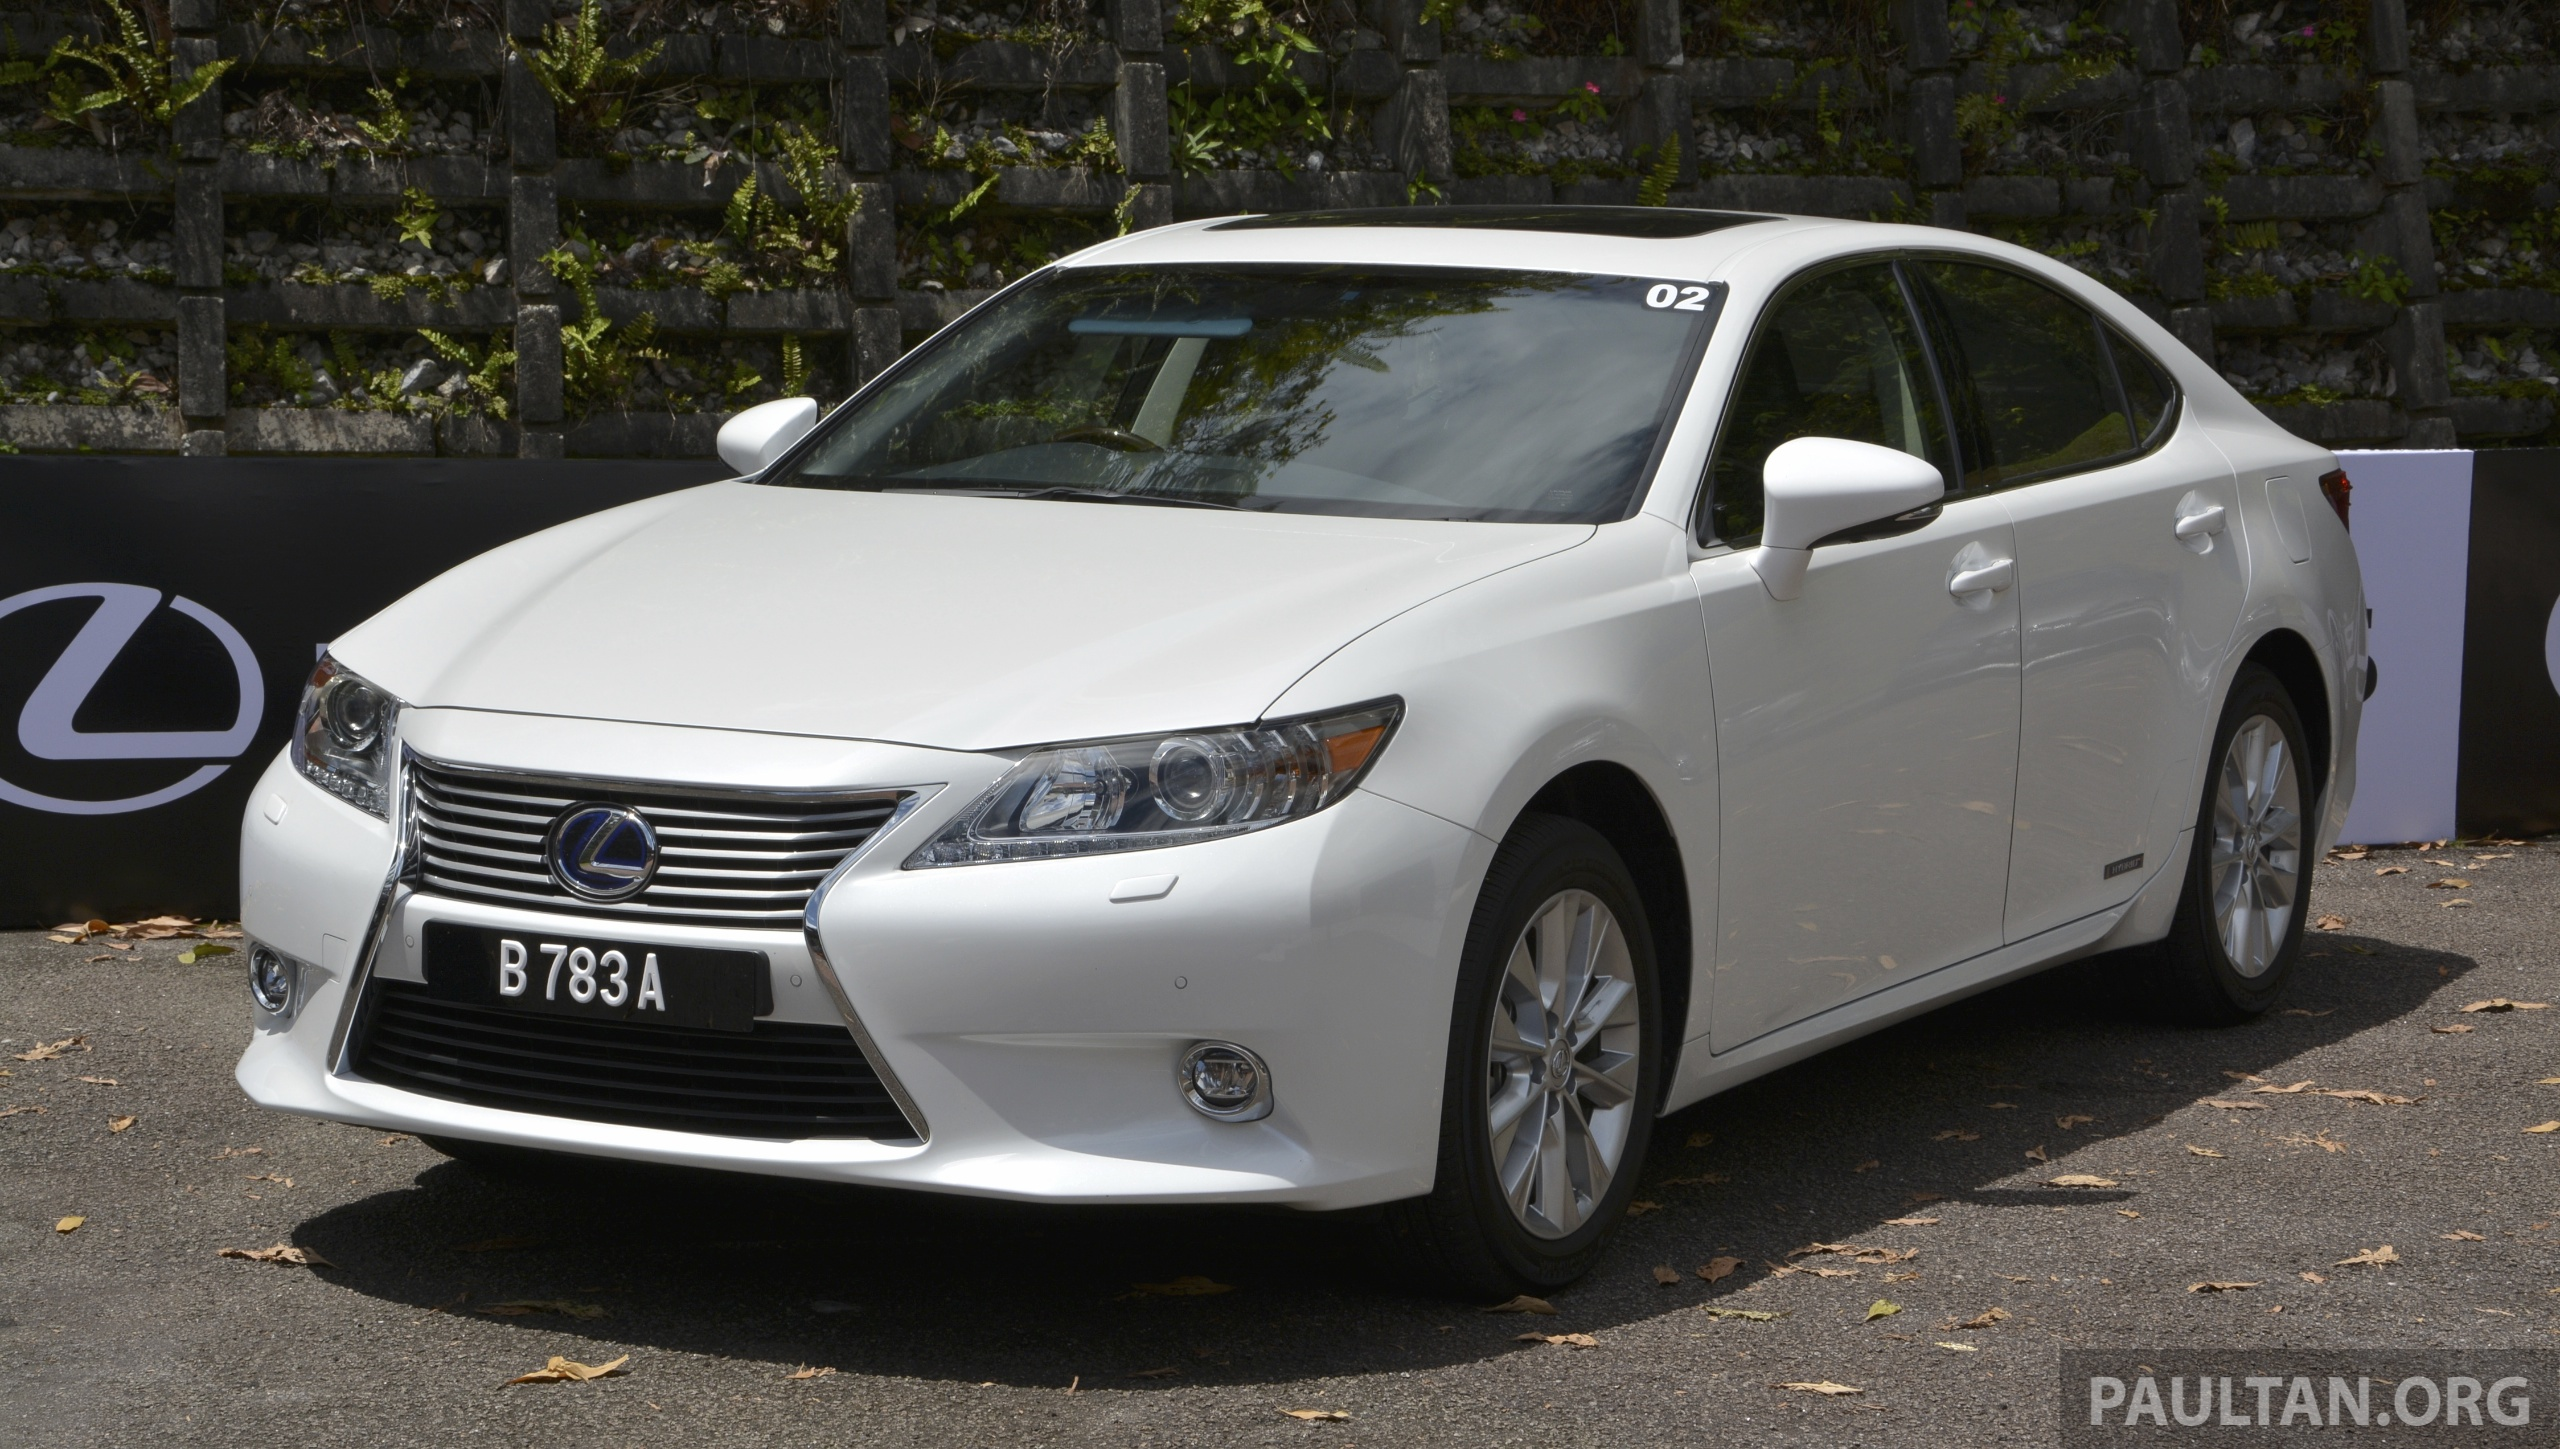 DRIVEN: 2013 Lexus ES 250 And 300h Sampled Image #219445